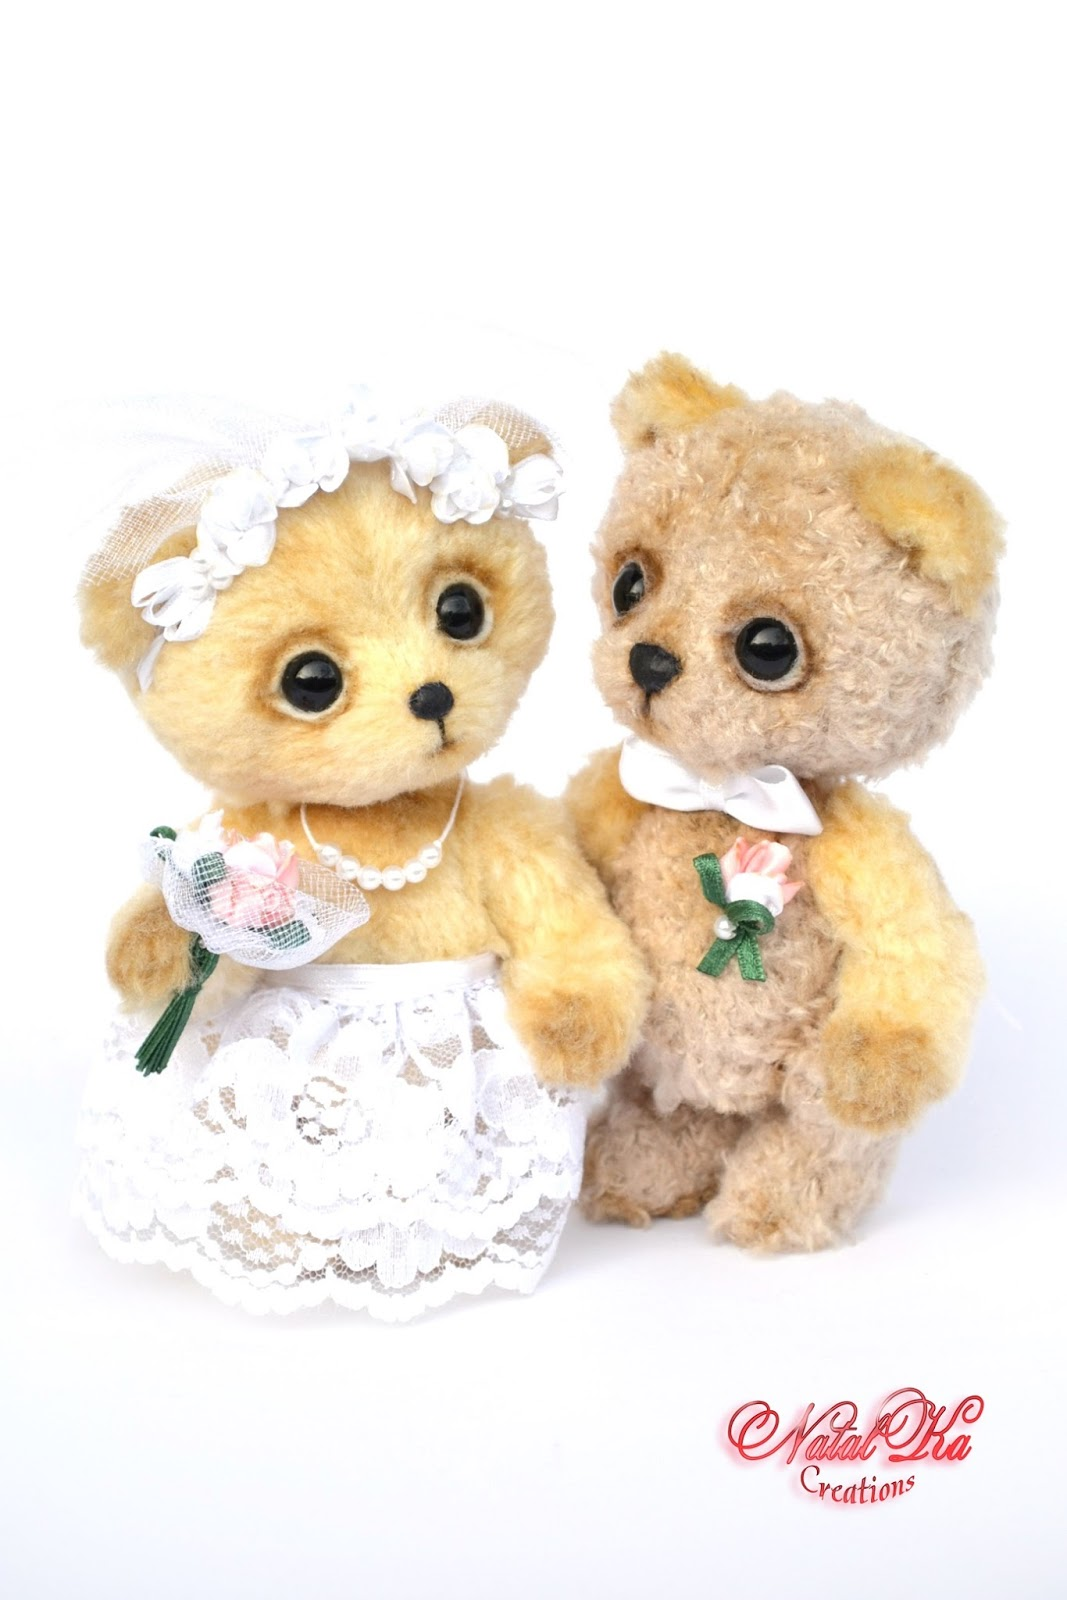 Artist teddy bear, artist bears, teddies, wedding, teddy bear, ooak, artist bear jointed, handmade by NatalKa Creations. Künstlerbär, Künstlerteddy, Teddybär, Teddys, Brautpaar, Unikat, handgemacht von NatalKa Creations